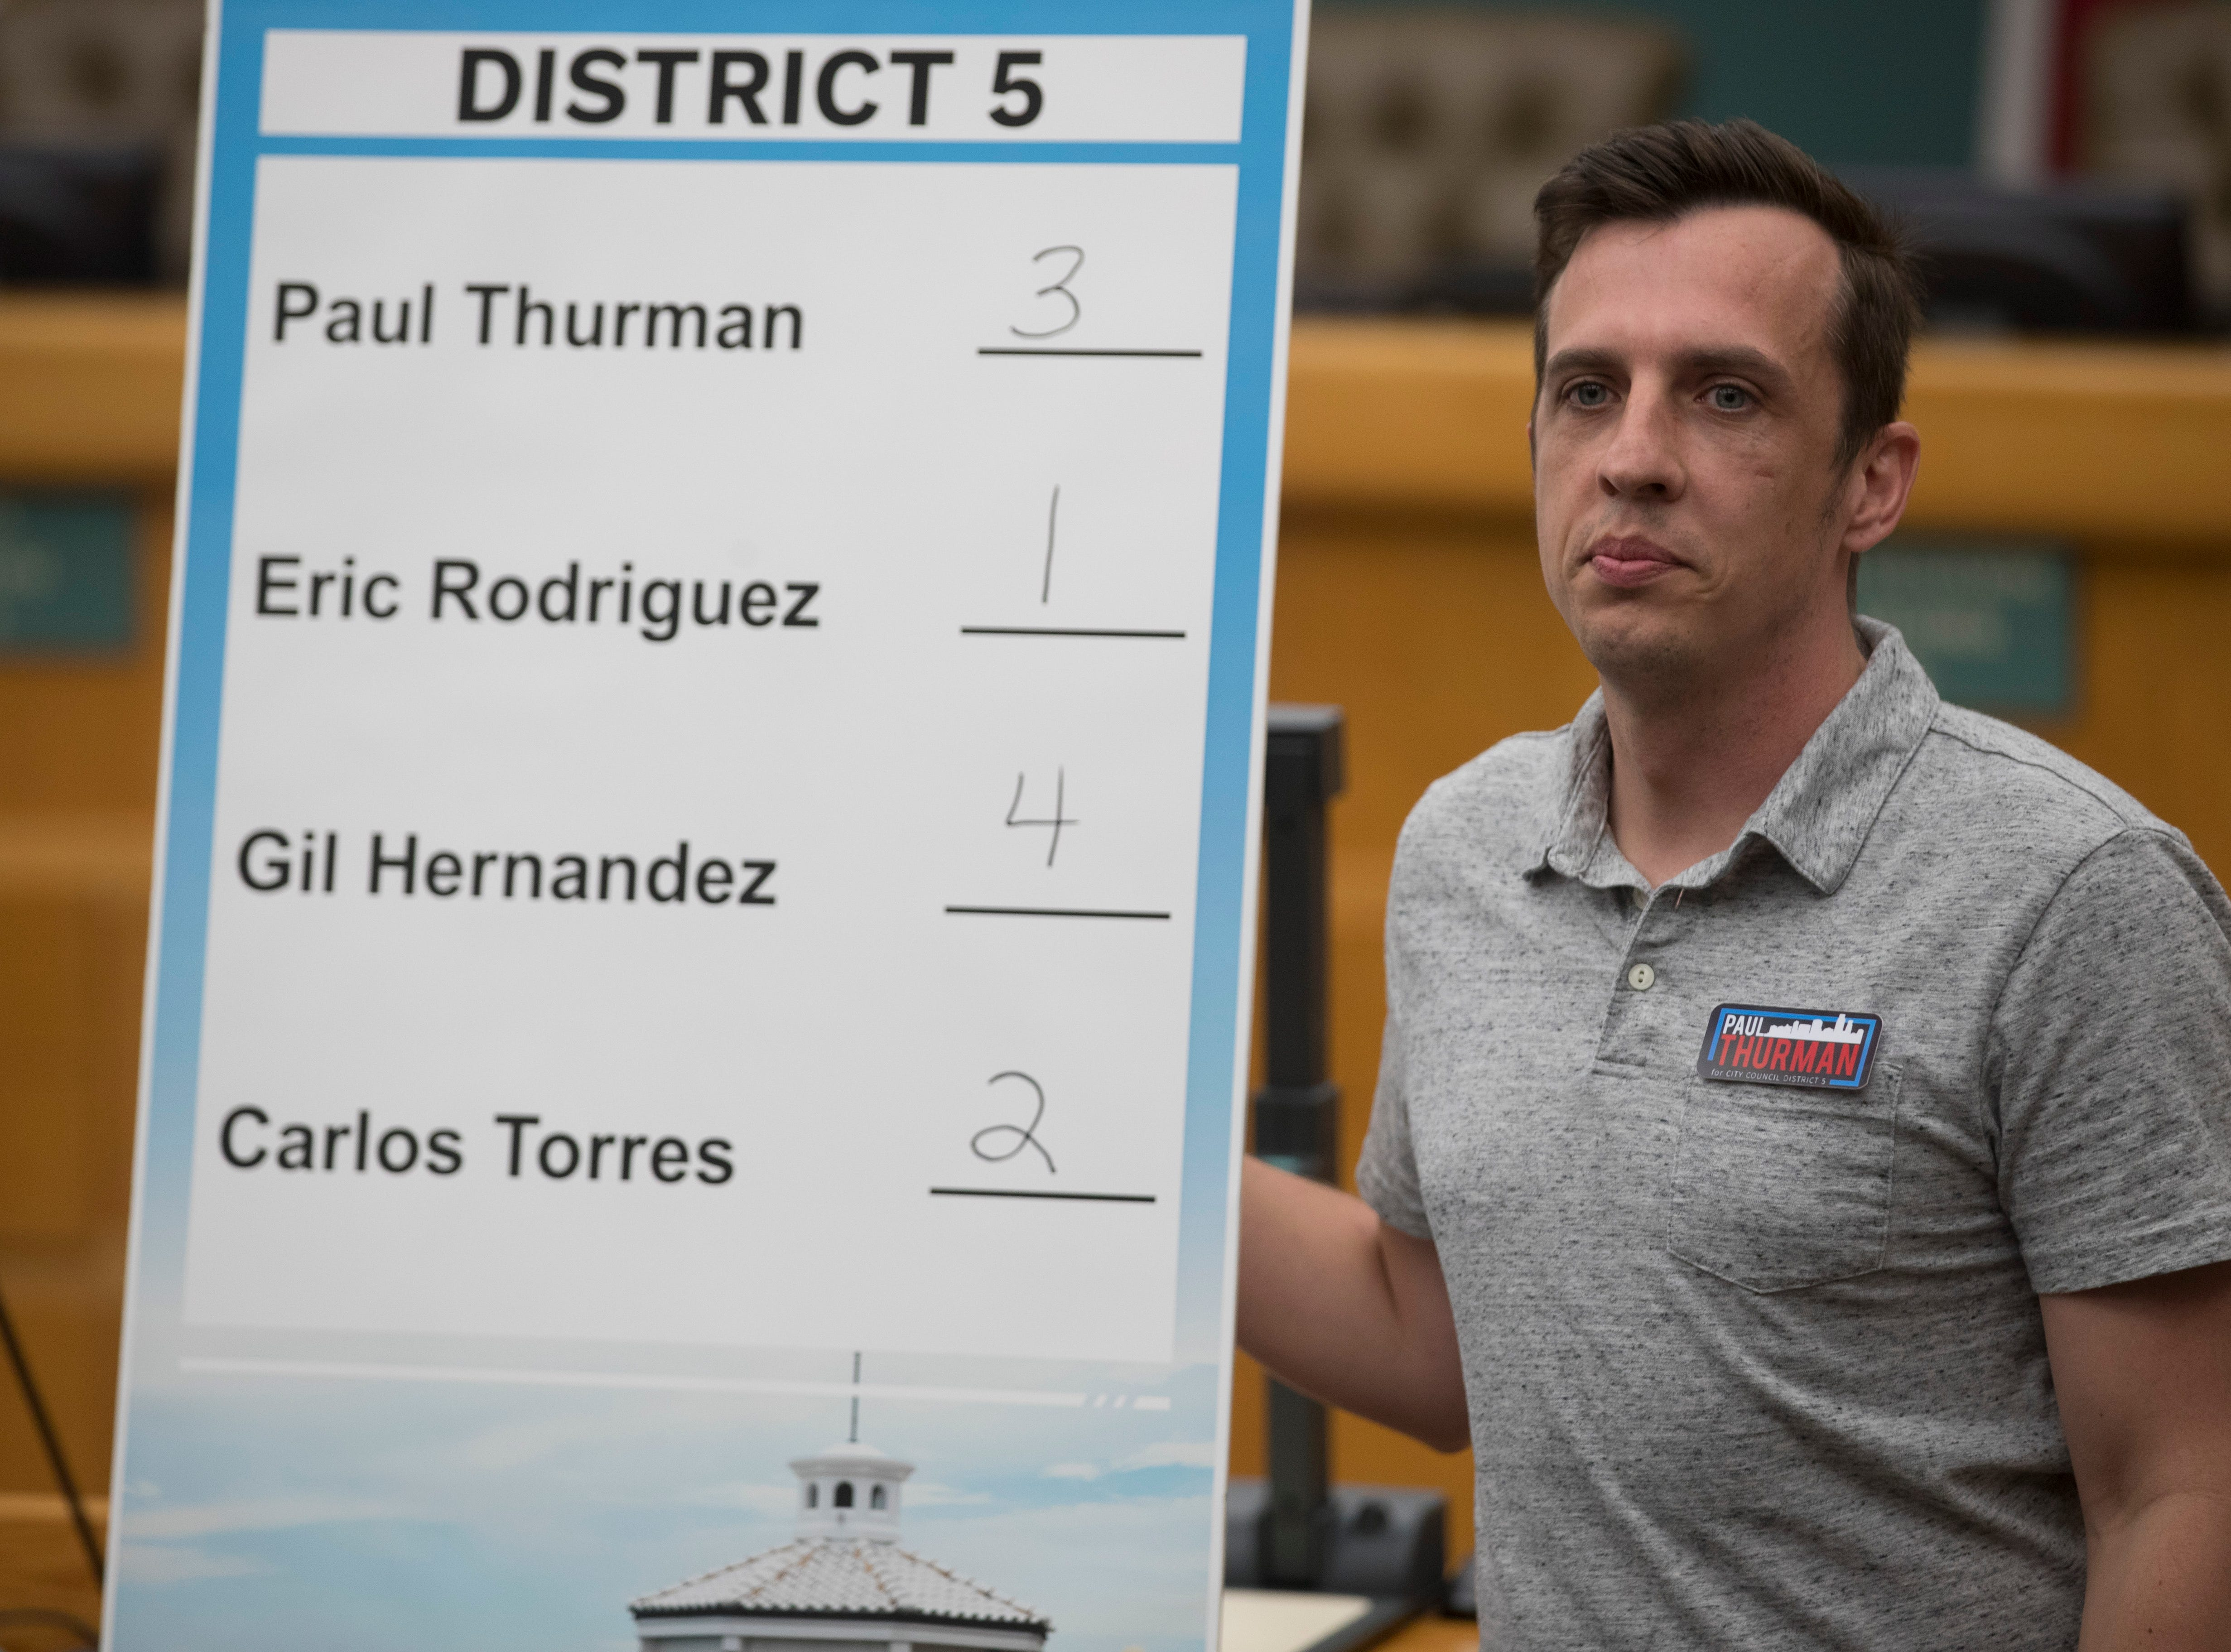 District 5 candidate Paul Thurman poses for a photo after drawing his ballot order on Thursday, August 23, 2018 at City Hall.